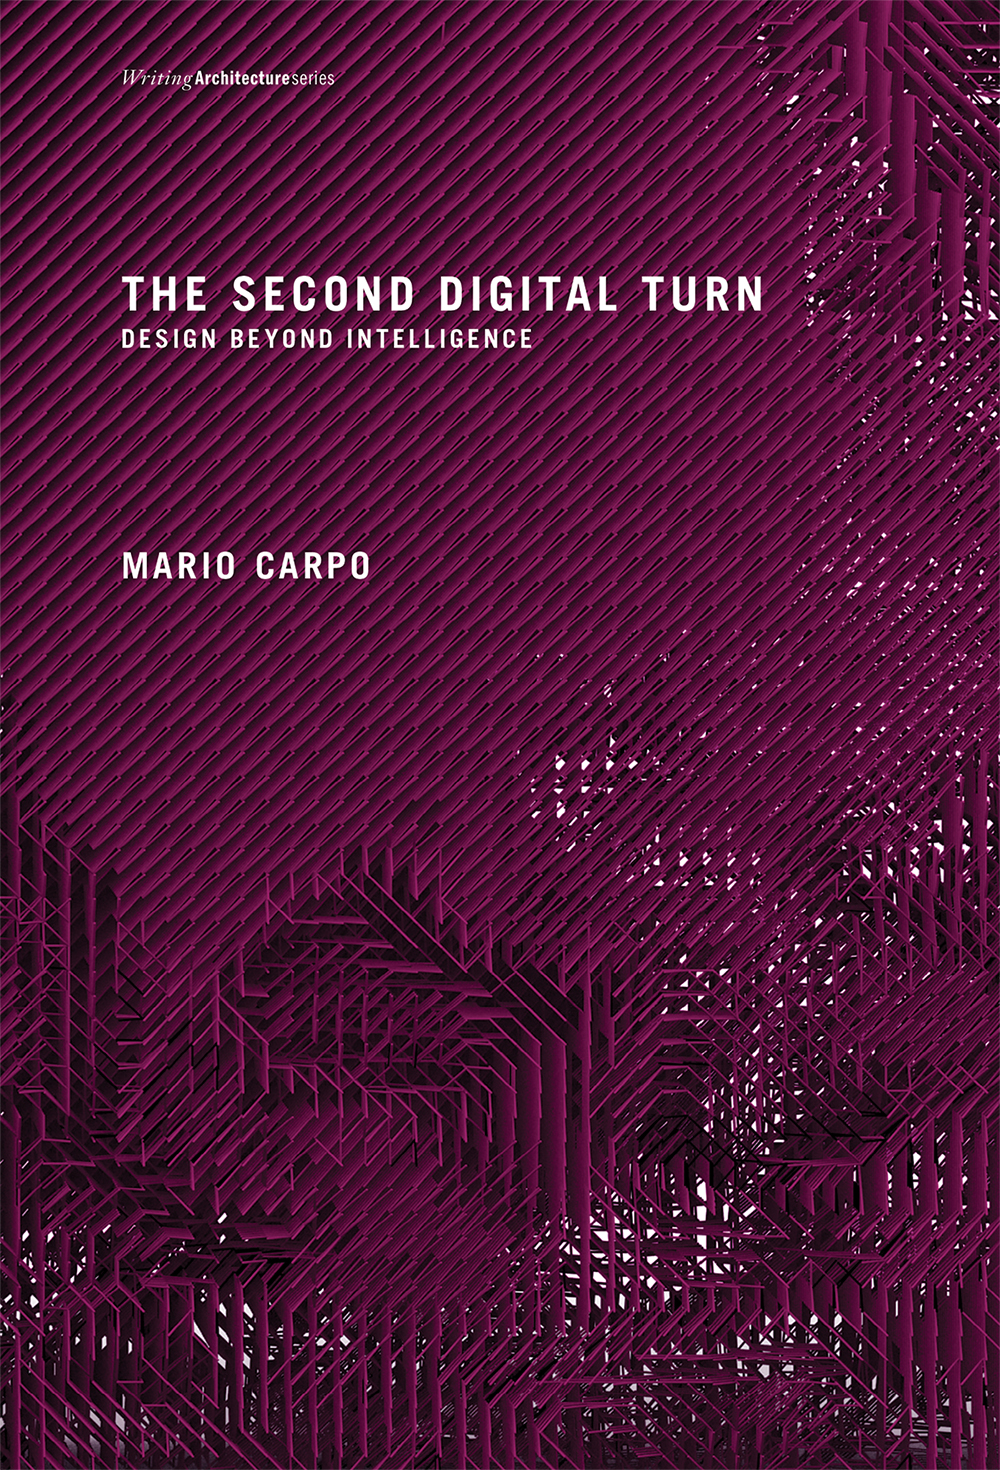 The Second Digital Turn: Design Beyond Intelligence                         by Mario Carpo  Almost a generation ago, the early software for computer aided design and manufacturing (CAD/CAM) spawned a style of smooth and curving lines and surfaces that gave visible form to the first digital age, and left an indelible mark on contemporary architecture. But today's digitally intelligent architecture no longer looks that way. In  The Second Digital Turn , Mario Carpo explains that this is because the design professions are now coming to terms with a new kind of digital tools they have adopted—no longer tools for making but tools for thinking. In the early 1990s the design professions were the first to intuit and interpret the new technical logic of the digital age: digital mass-customization (the use of digital tools to mass-produce variations at no extra cost) has already changed the way we produce and consume almost everything, and the same technology applied to commerce at large is now heralding a new society without scale—a flat marginal cost society where bigger markets will not make anything cheaper. But today, the unprecedented power of computation also favors a new kind of science where prediction can be based on sheer information retrieval, and form finding by simulation and optimization can replace deduction  from mathematical formulas. Designers have been toying with machine thinking and machine learning for some time, and the apparently unfathomable complexity of the physical shapes they are now creating already expresses a new form of artificial intelligence, outside the tradition of modern science and alien to the organic logic of our mind.